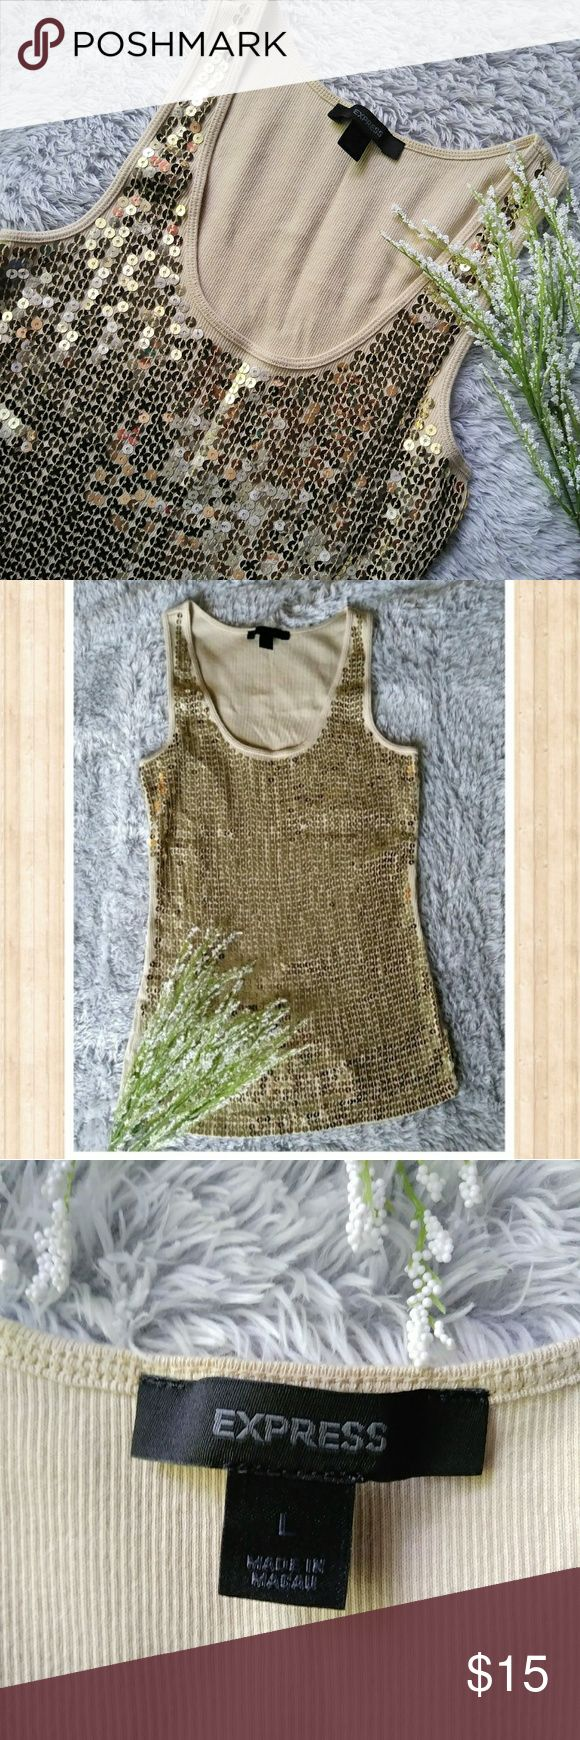 Express Gold Sequin Tank Top Size Large Fabulous gold sequin top for a night out. Size large but could also be warn as a medium. Pre-owned in perfect condition. 100% prima cotton. Express Tops Tank Tops